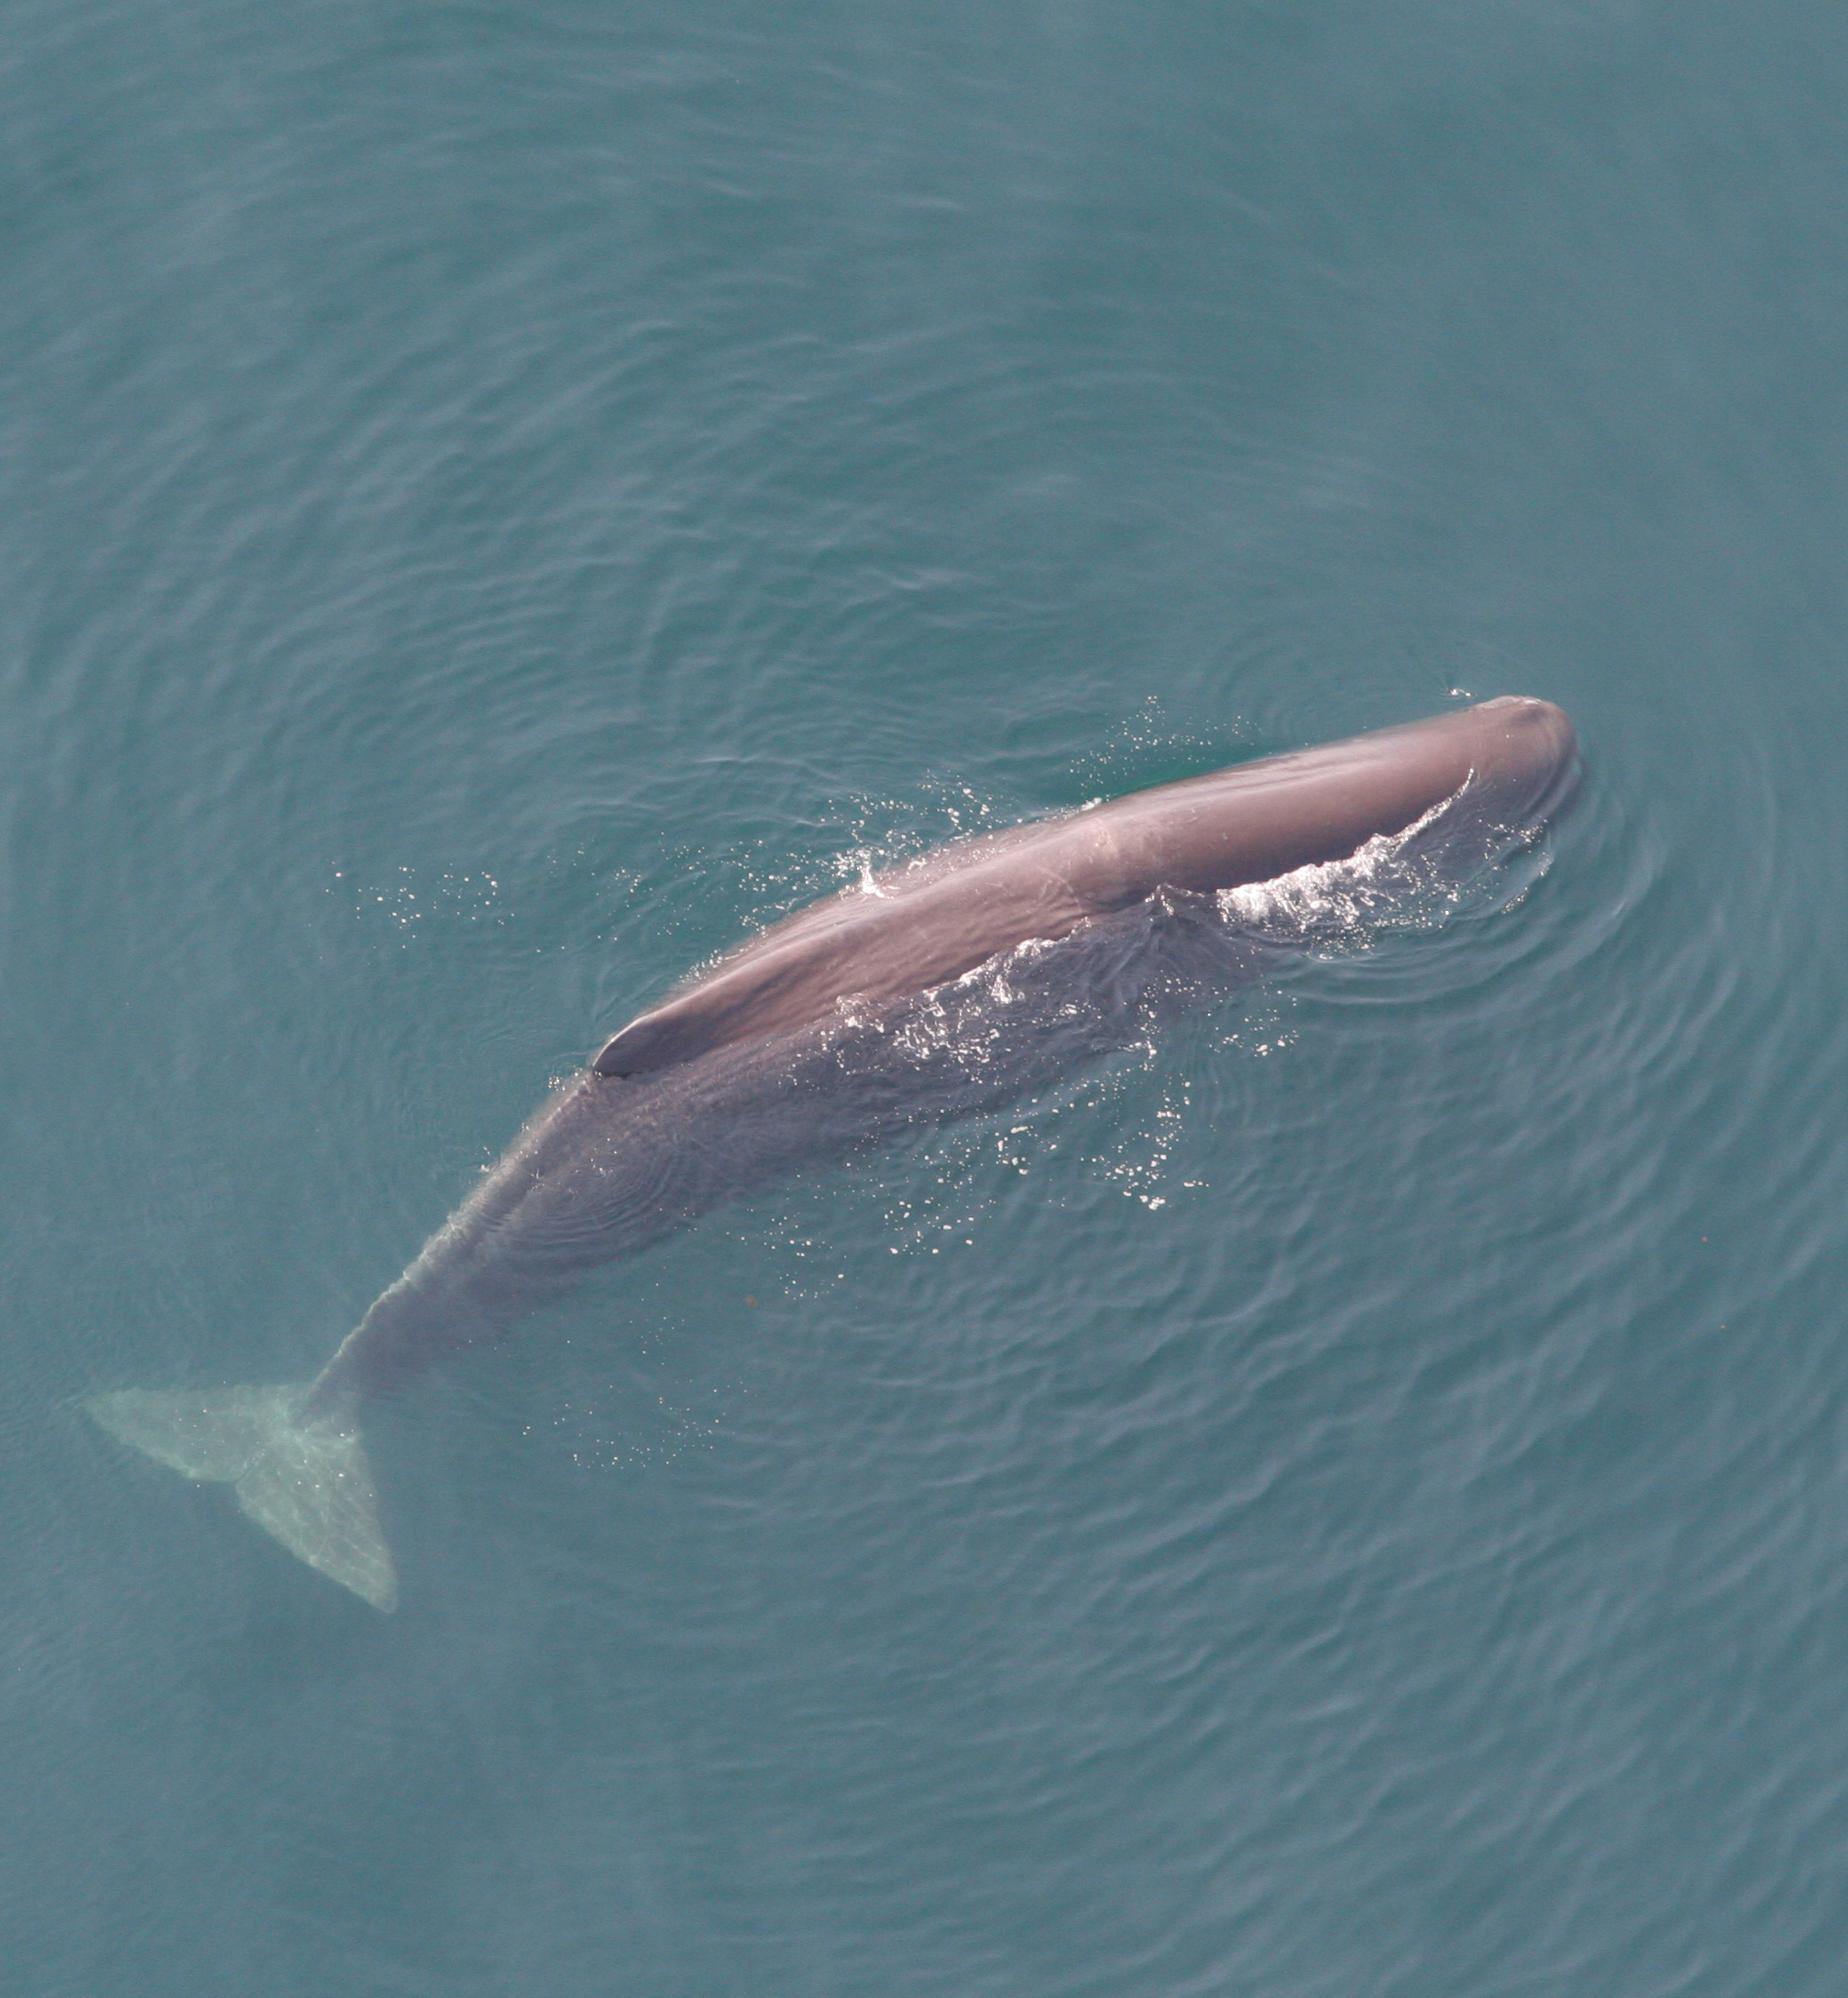 Lend your voice to help save sperm whales.